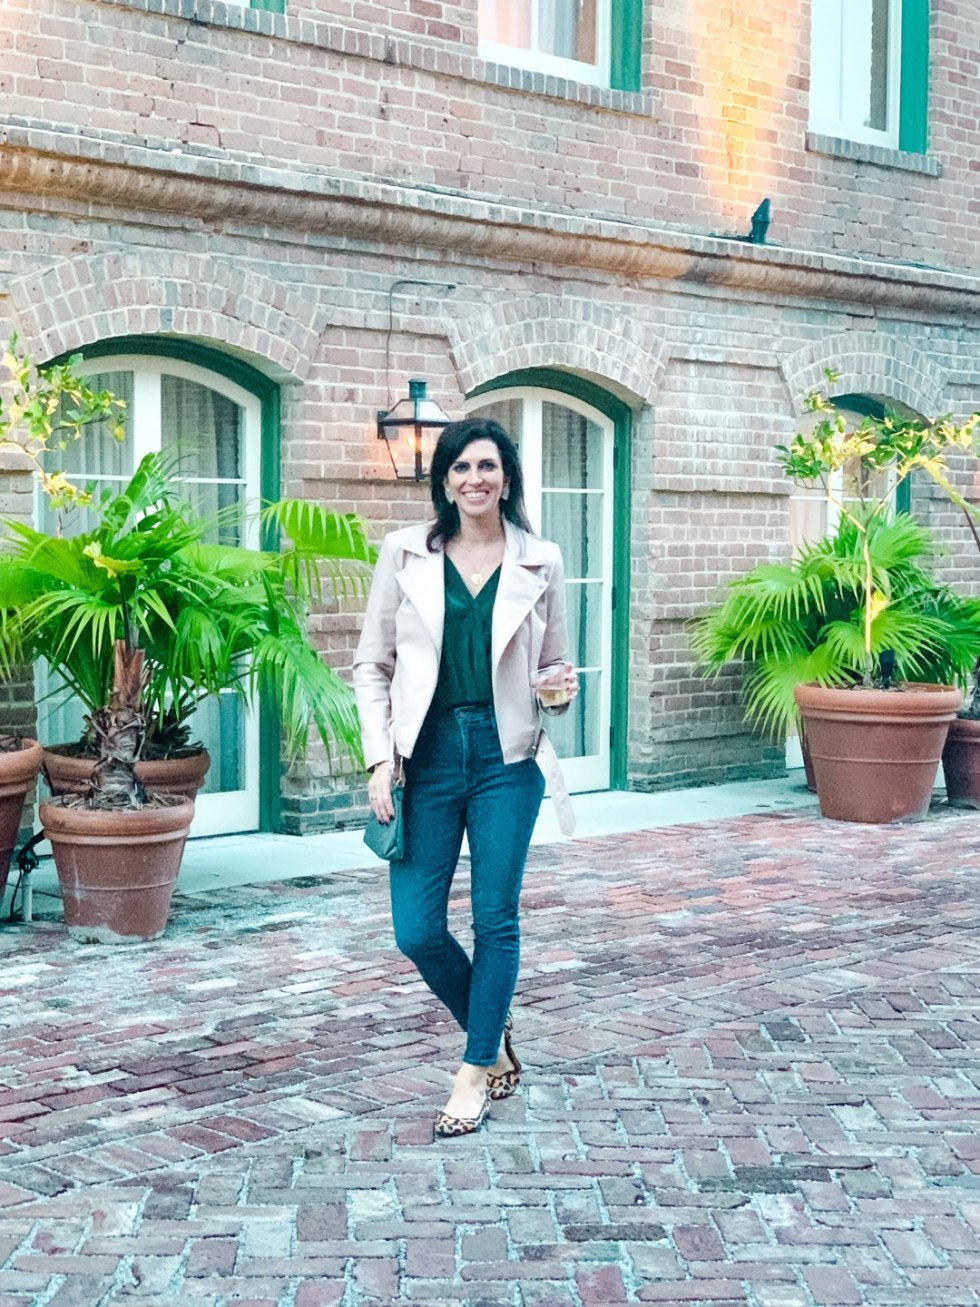 Girls Trip to New Orleans by popular US travel blog, I'm Fixin To: image of a woman wearing a green blouse, faux leather jacket, skinny jeans, and Rothy's shoes.